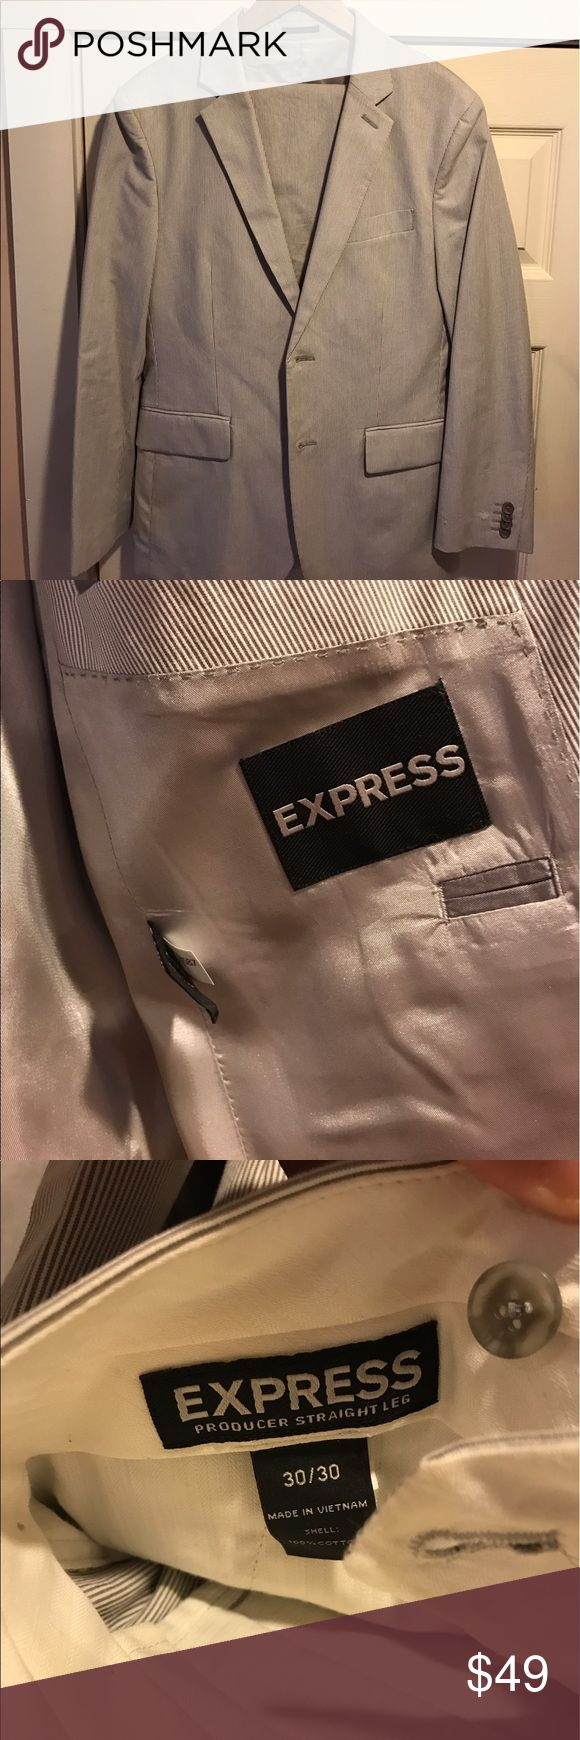 Express Seersucker 38s suit Seersucker express 38s Producer suit with 30x30 pants. Worn once to a wedding. No alterations. Dry cleaned Express Suits & Blazers Suits